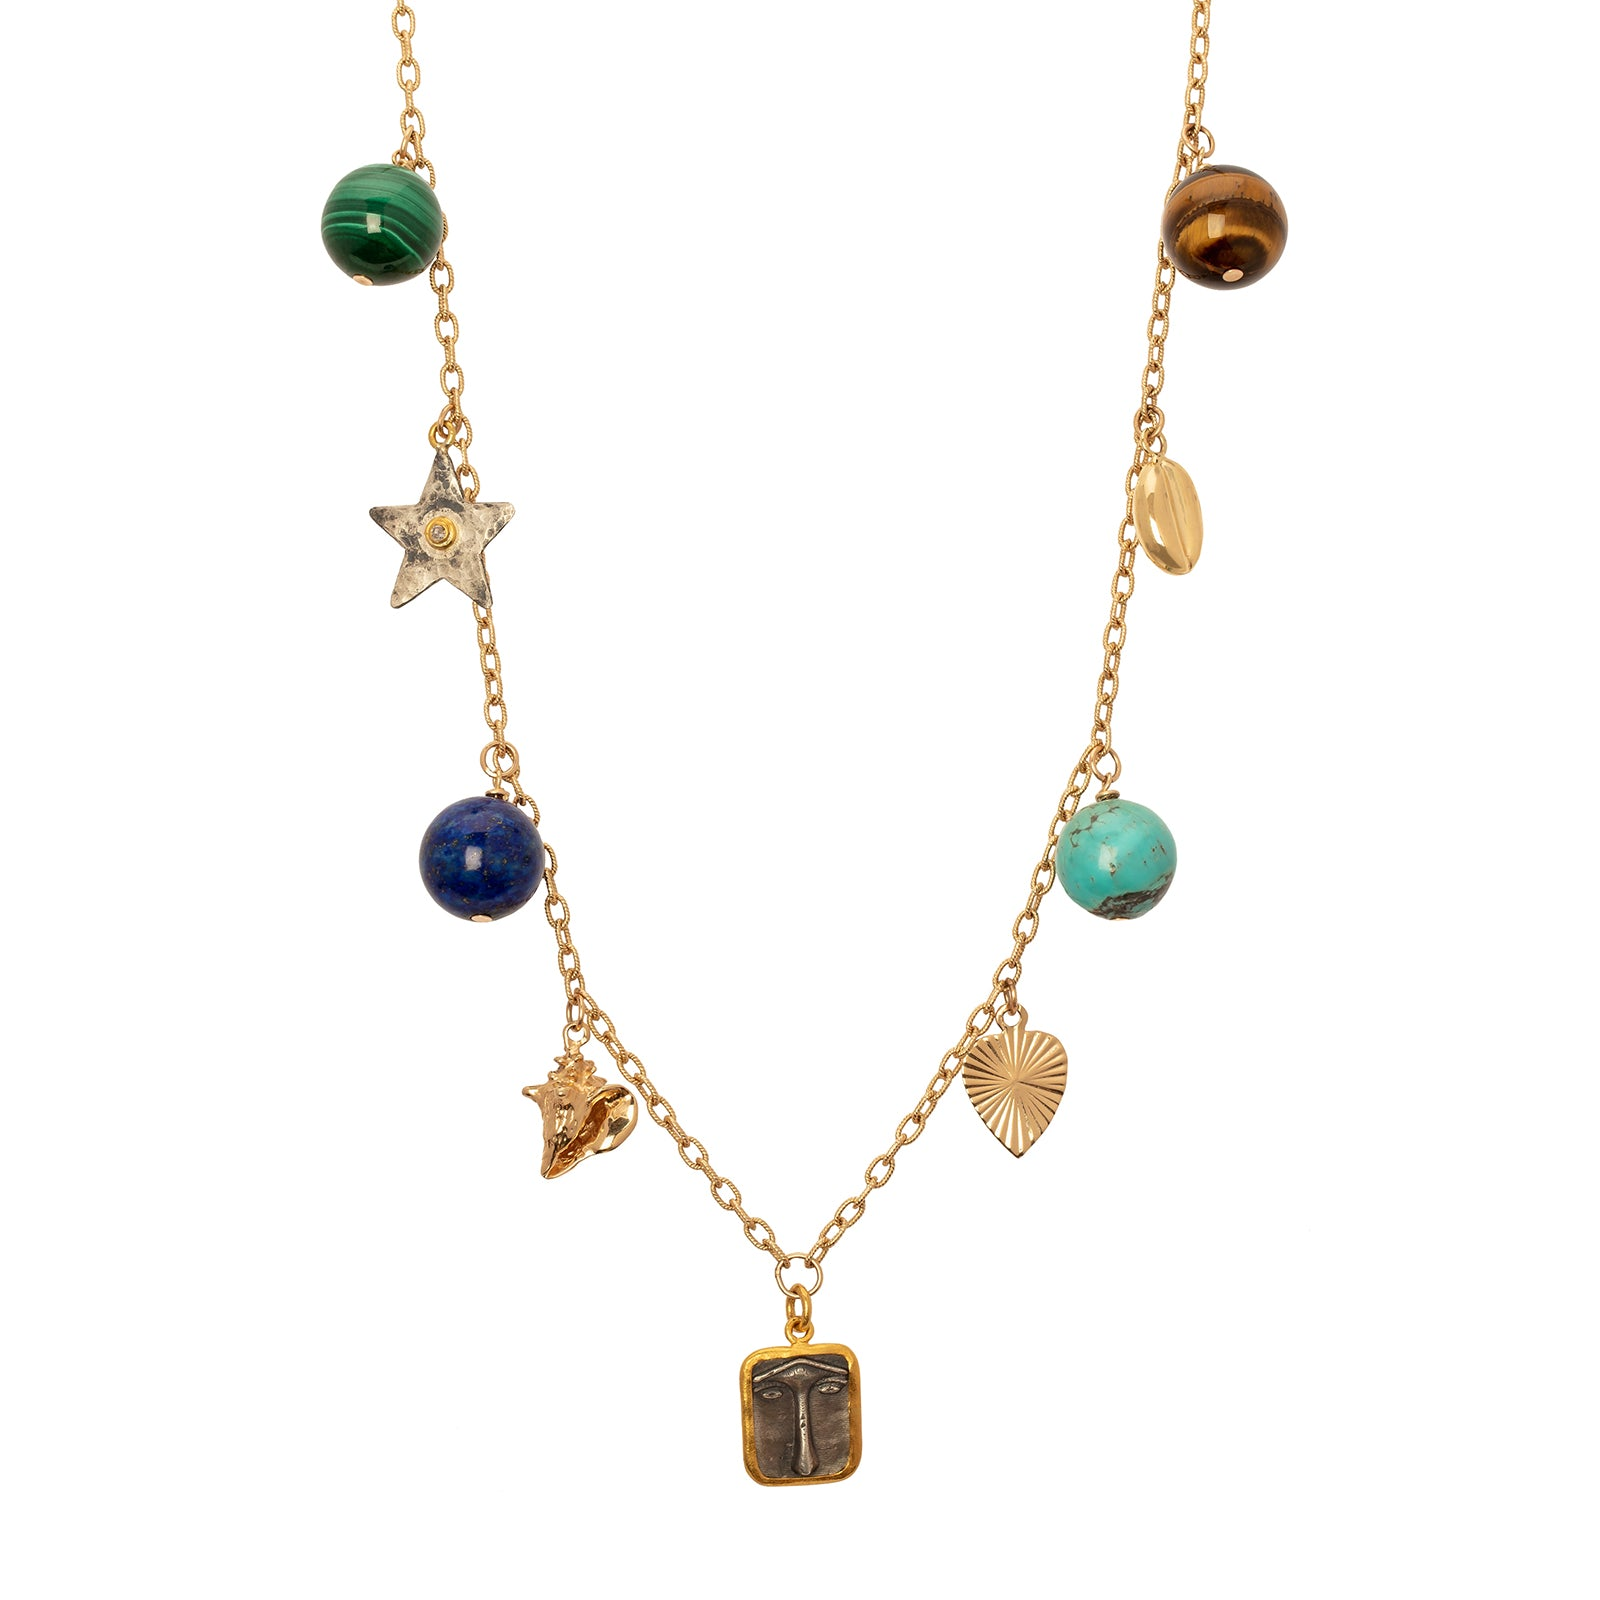 Haute Victoire Mixed Charm Necklace - Necklaces - Broken English Jewelry